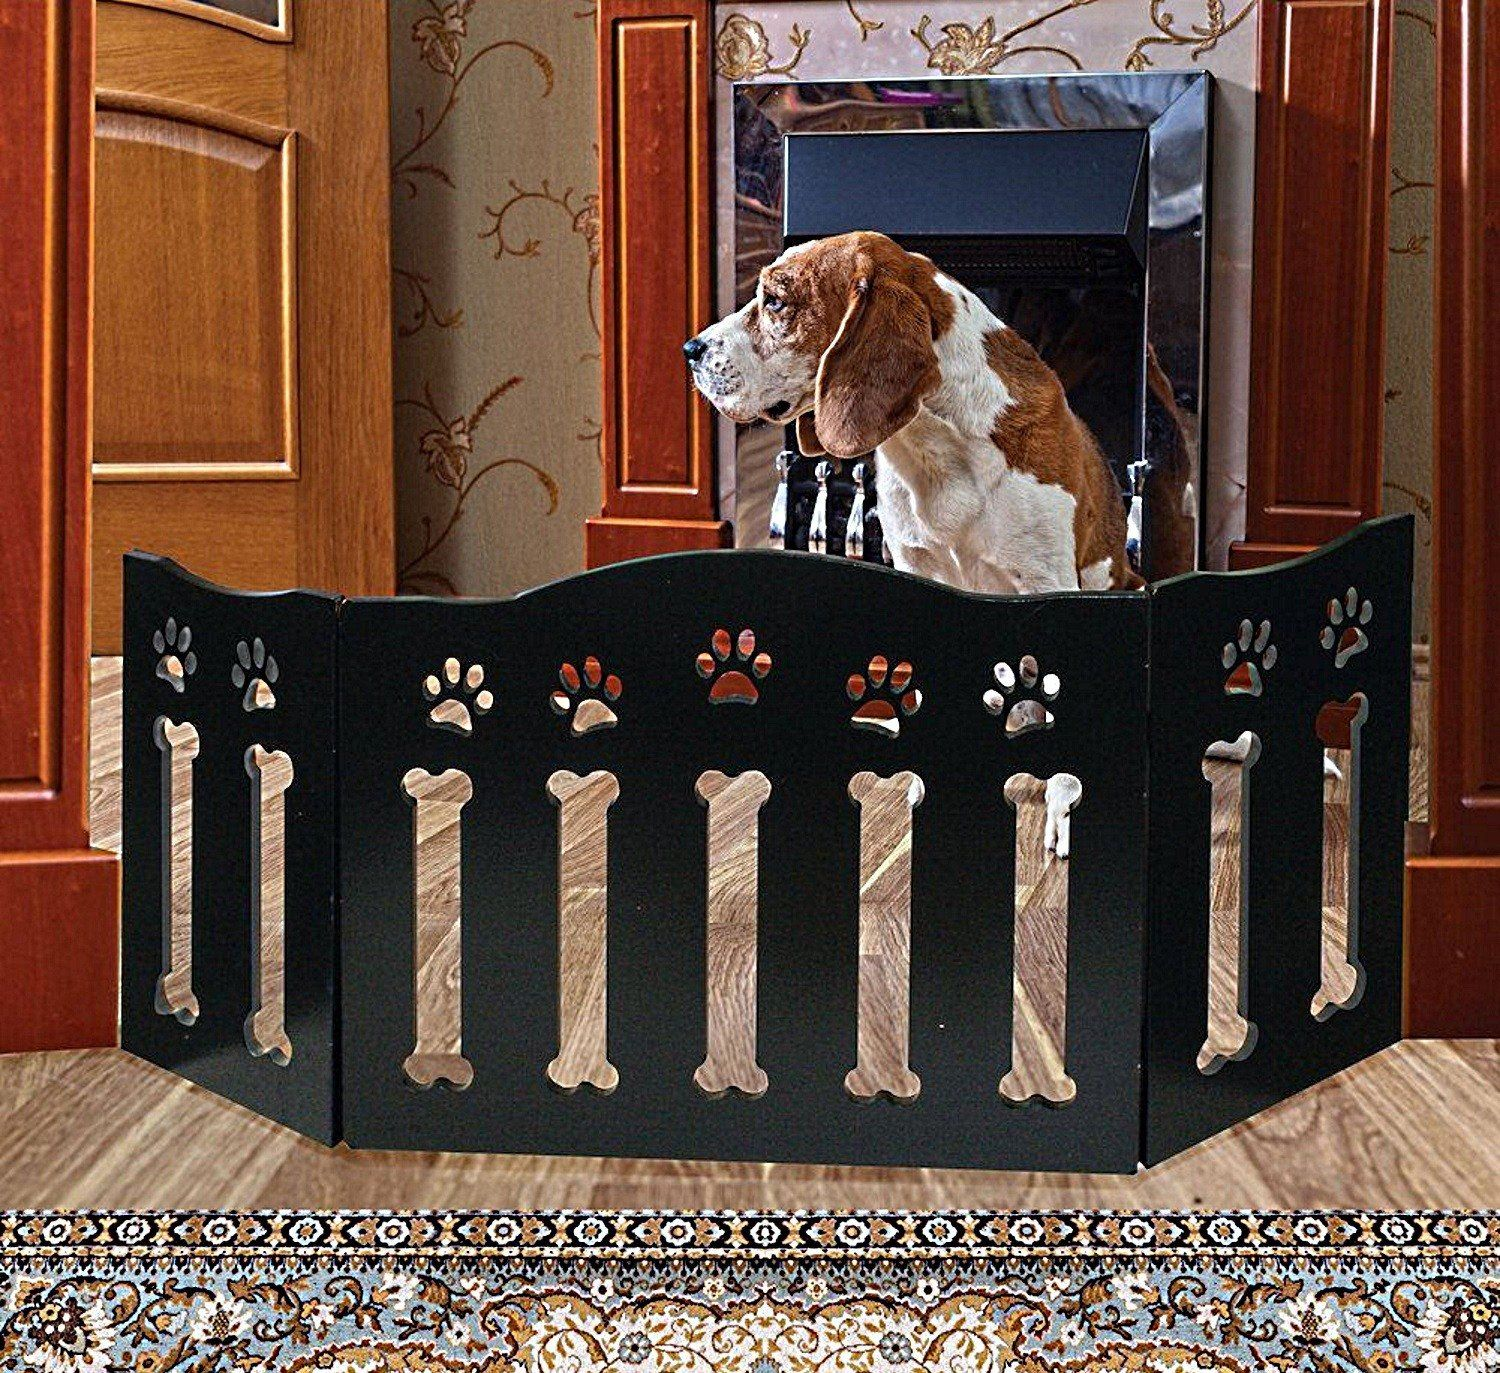 Etna Wooden Paws And Bones Pet Dog Gate Free Standing Trifold 19